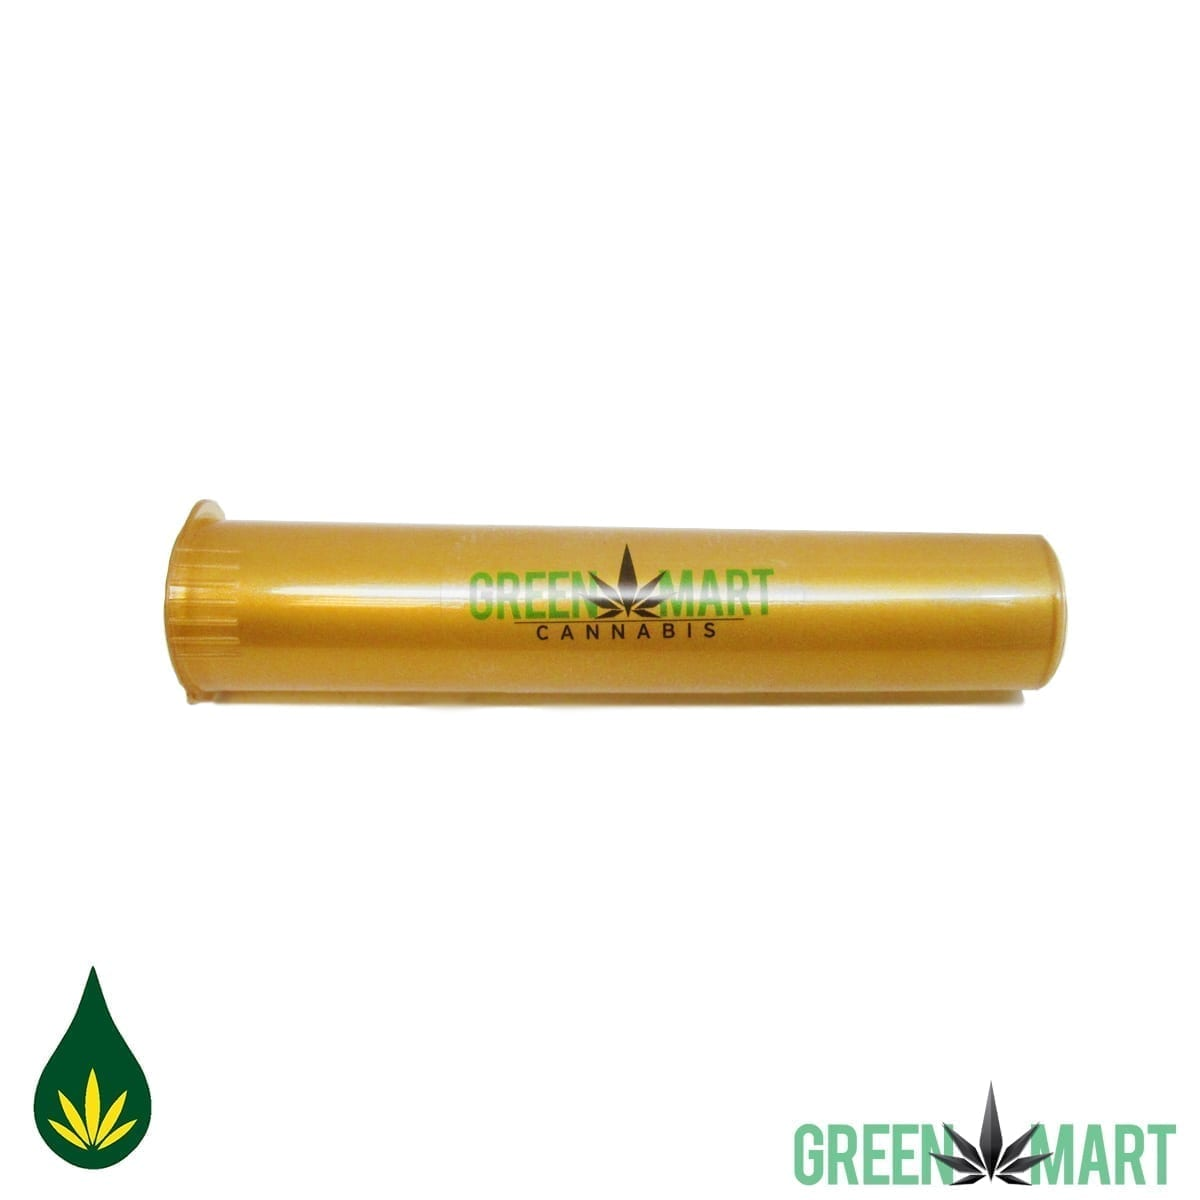 Eugenius Green Mart Rolled Pre-rolls